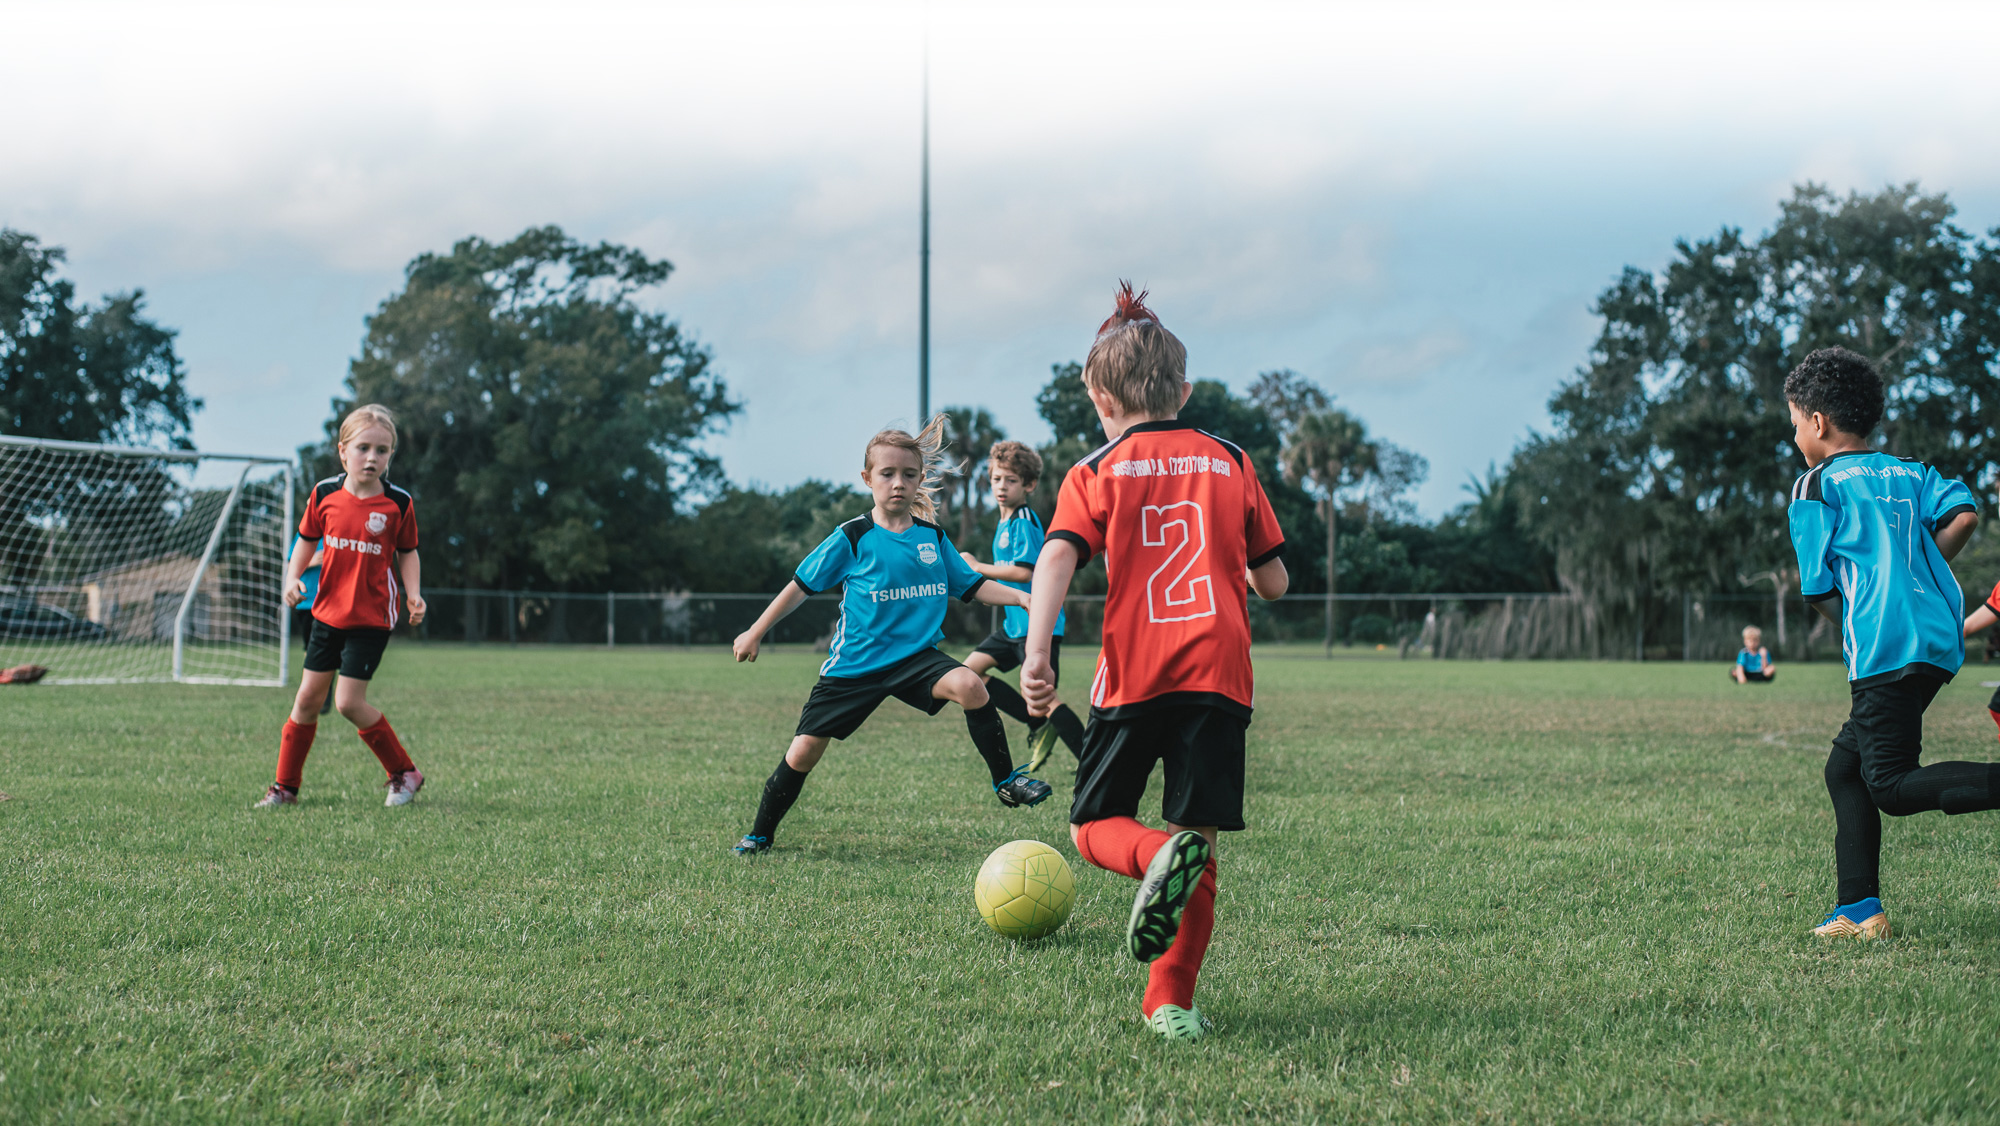 Under-8 youth soccer players at Southside Youth Soccer League in St. Petersburg, Florida